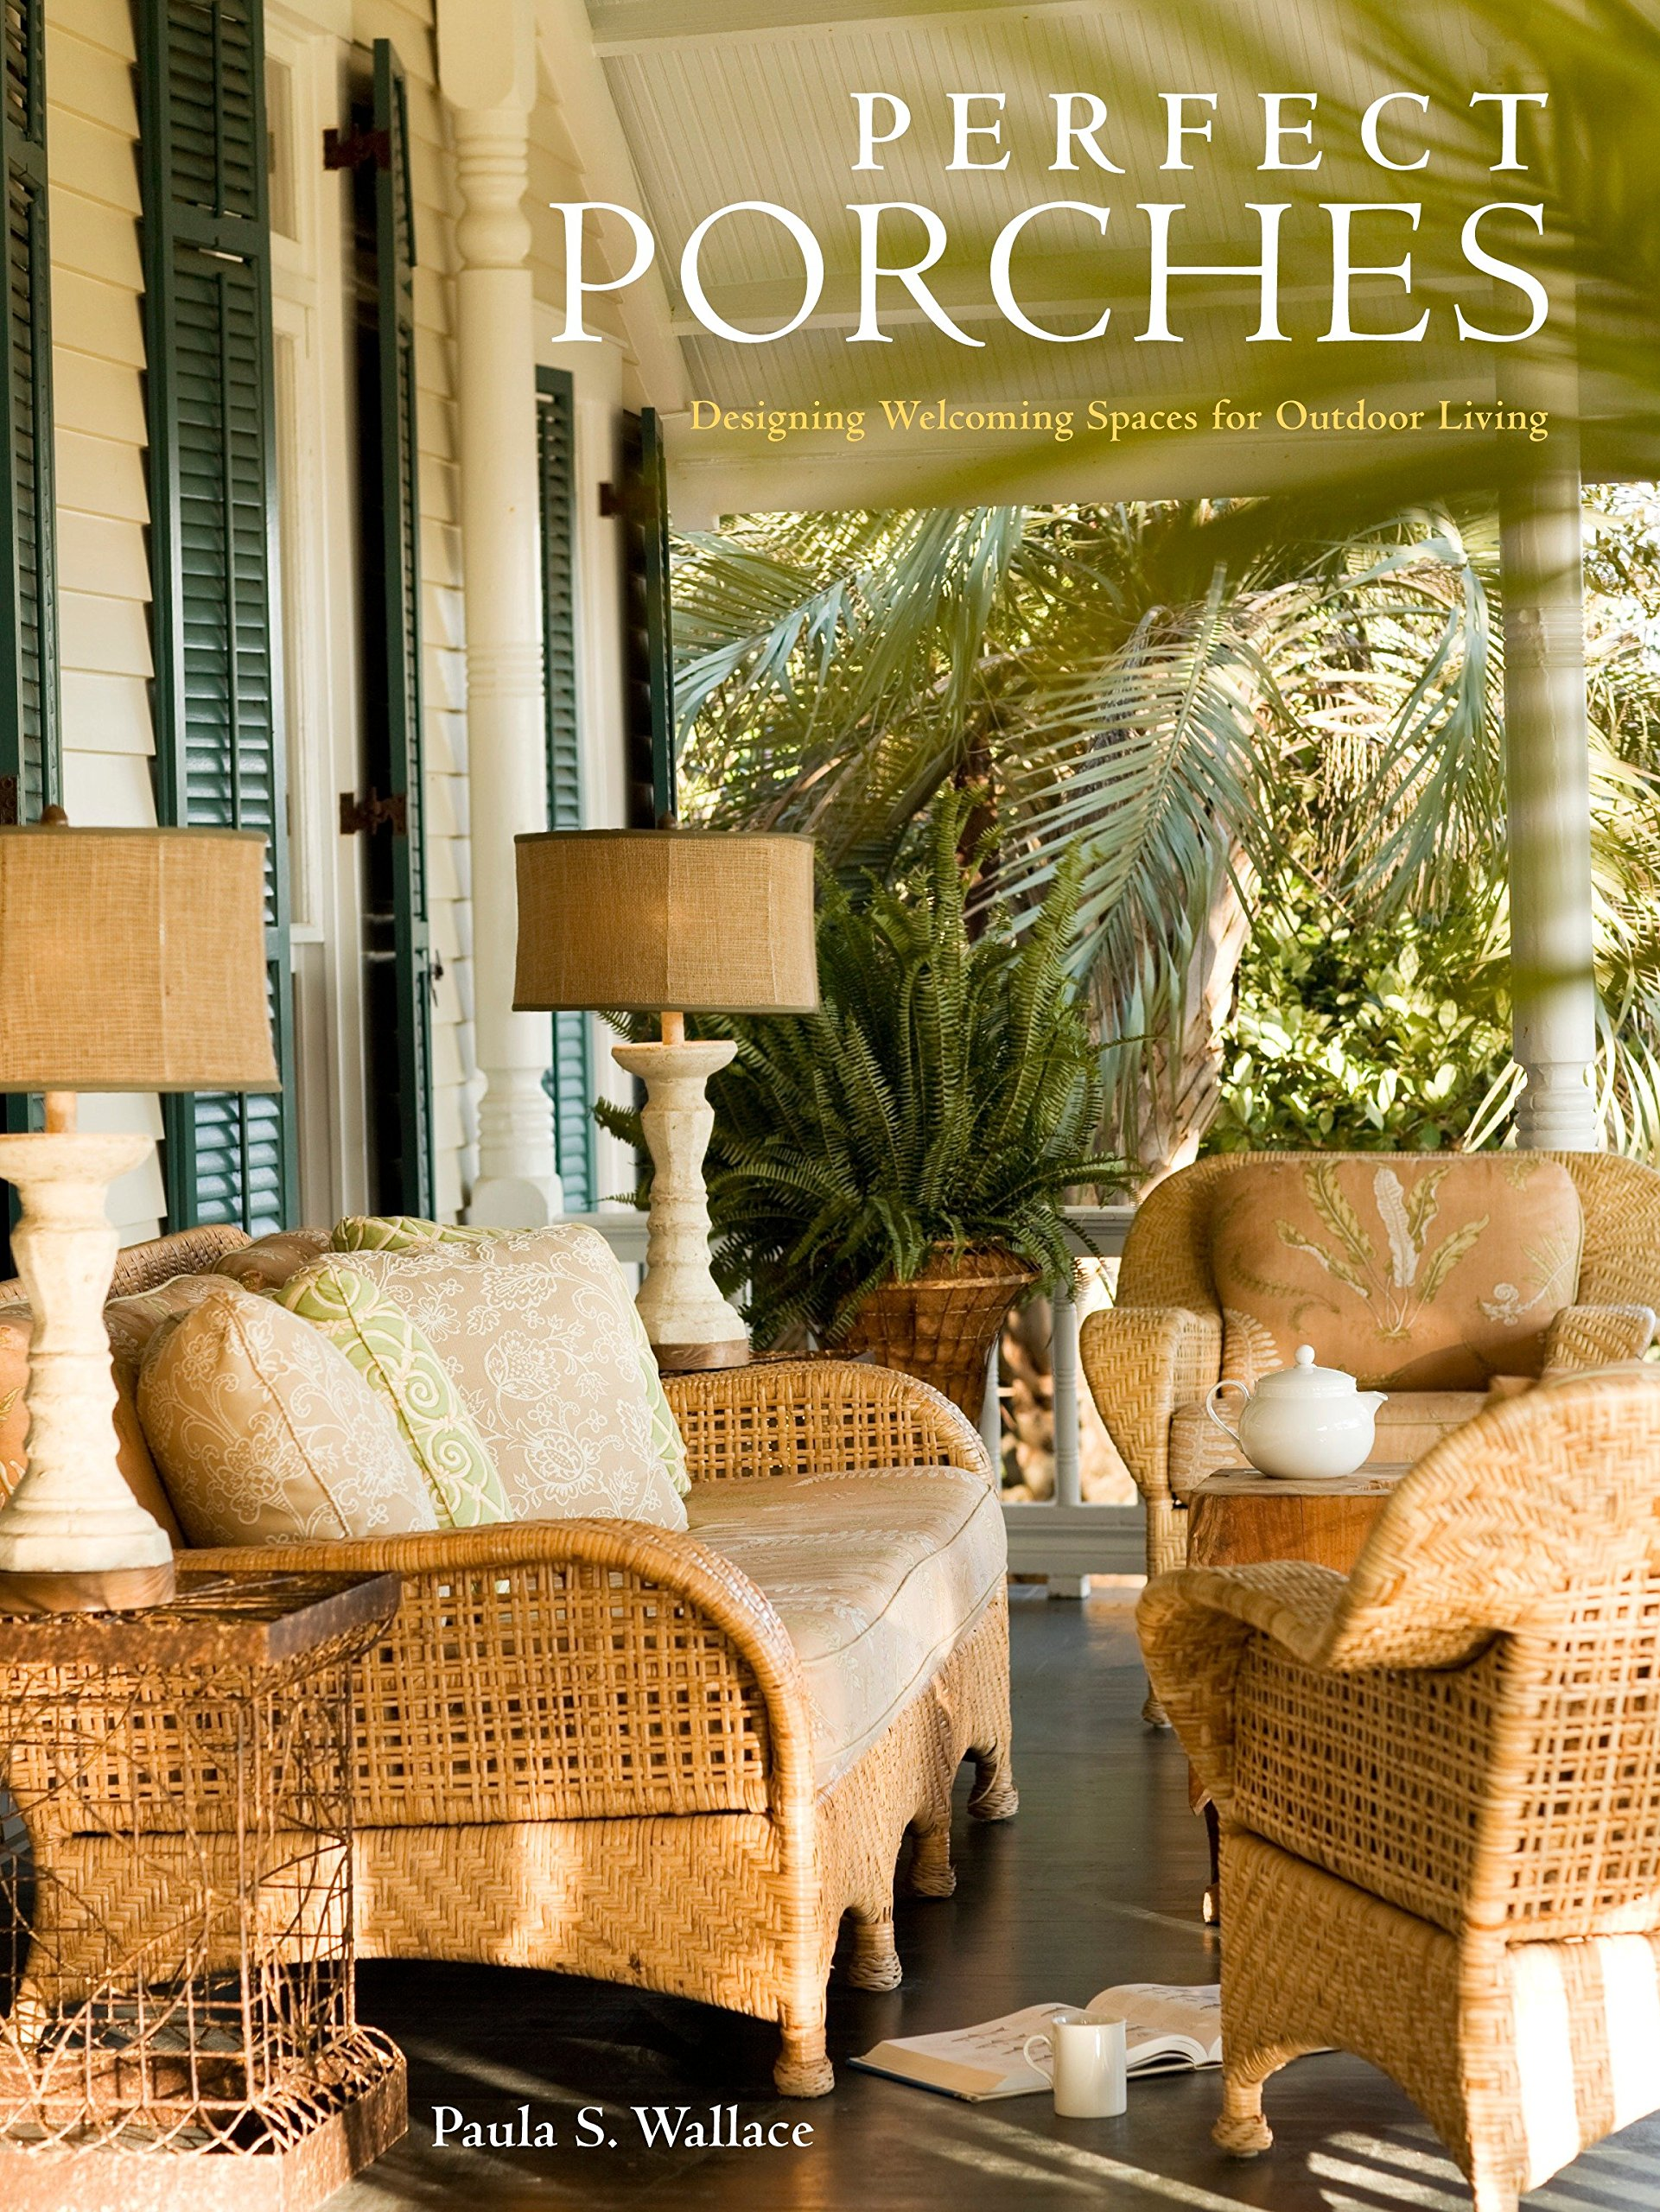 Download Perfect Porches: Designing Welcoming Spaces for Outdoor Living PDF